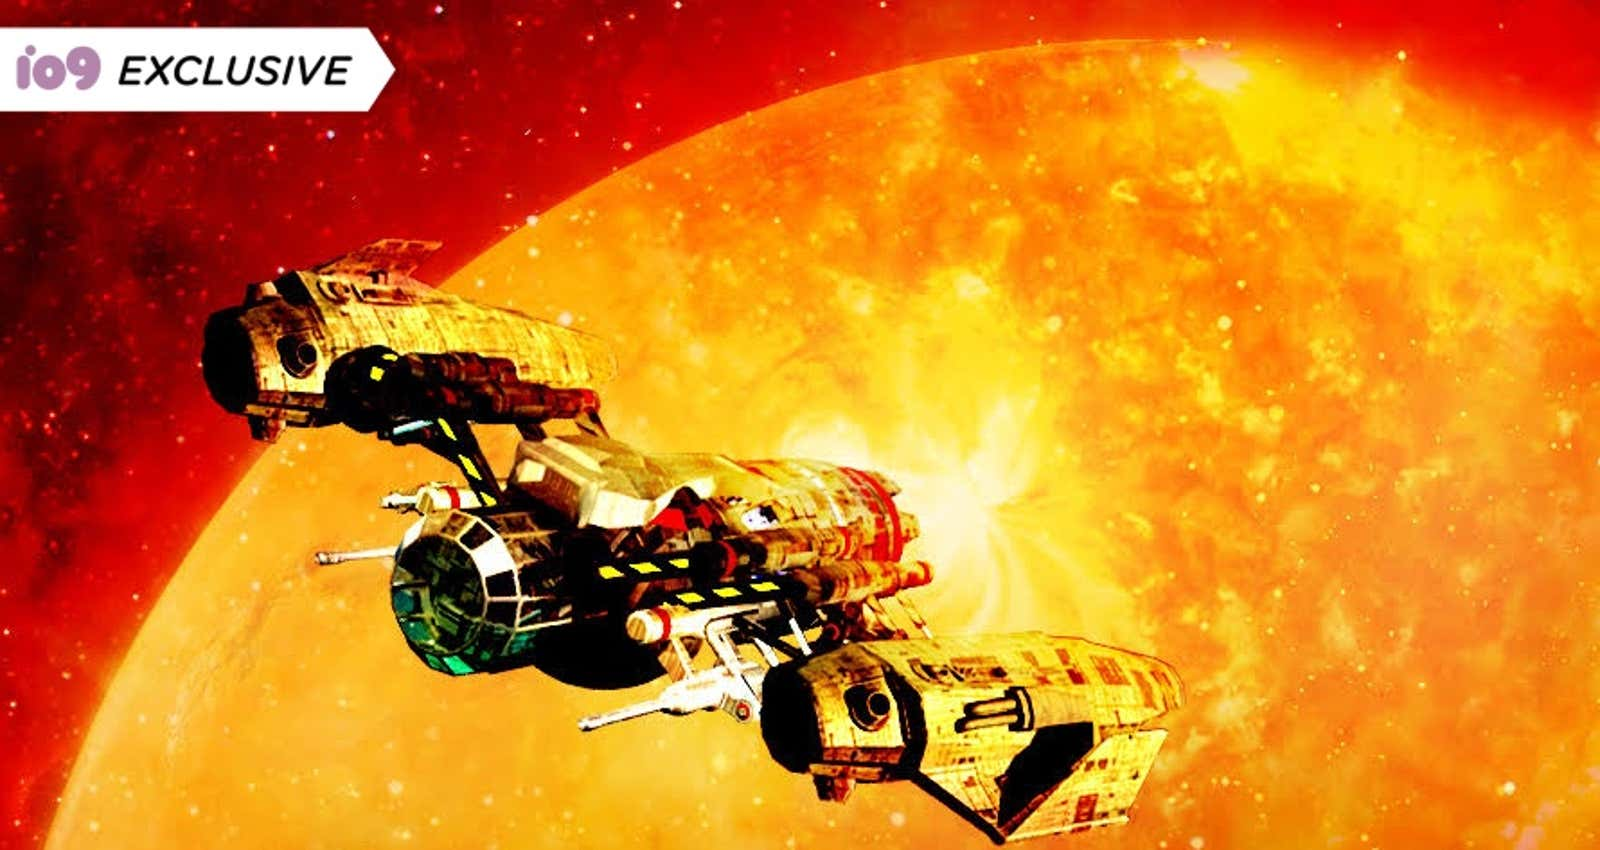 New Space Opera Book Series Features a Talking Cat